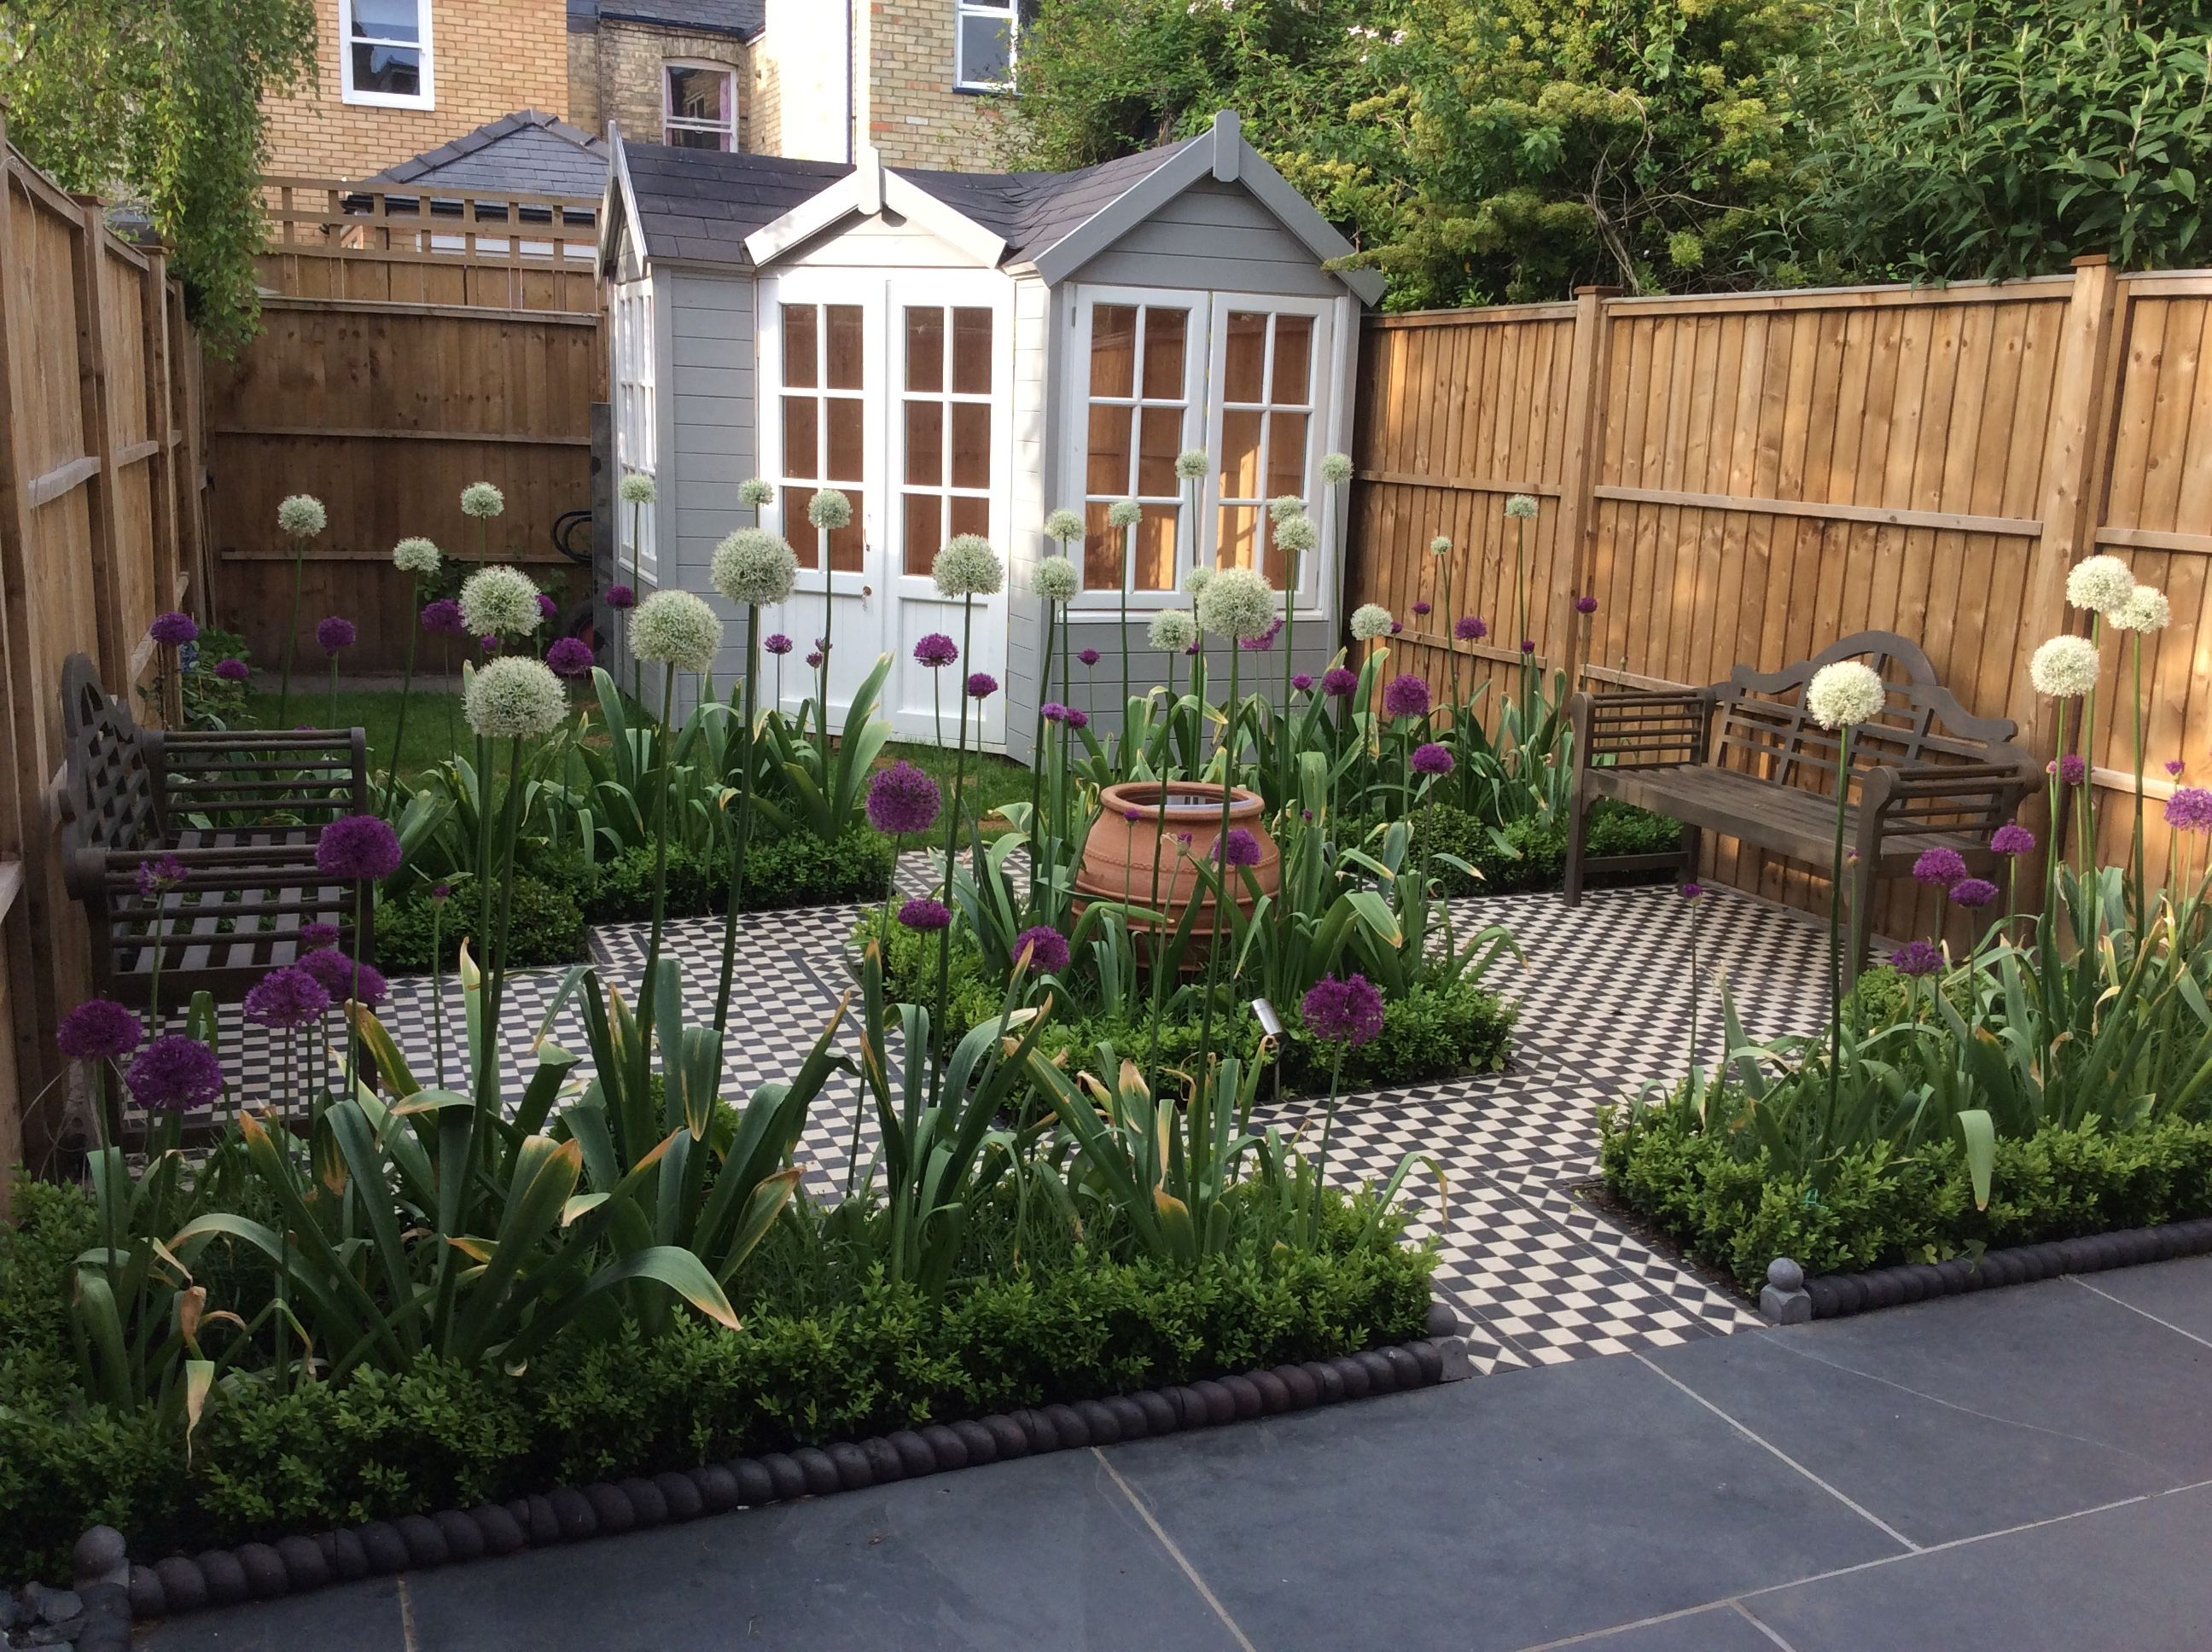 Small back garden of Victorian terraced house | Small back ... on Small Terraced House Backyard Ideas id=78629